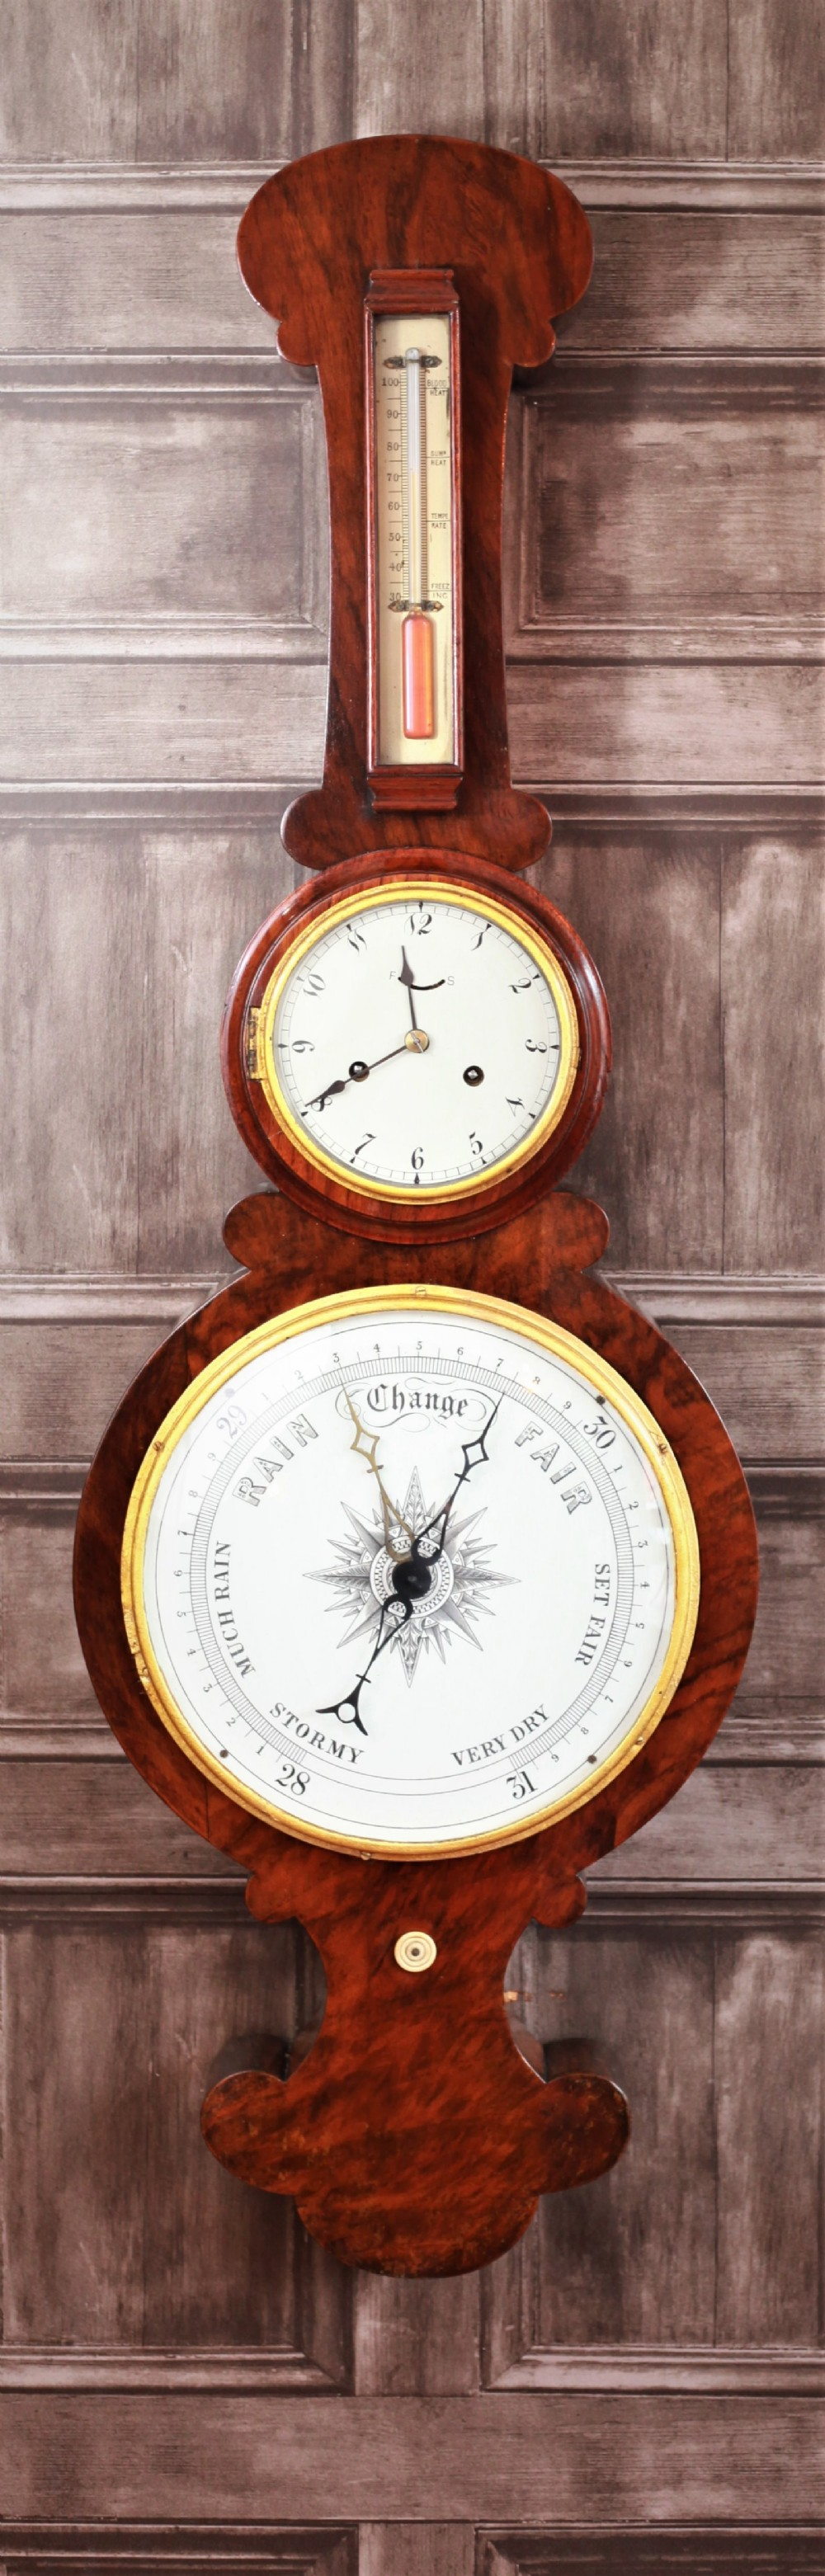 lovely 19th century flame mahogany month going clock mercury barometer combination with original alcohol thermometer